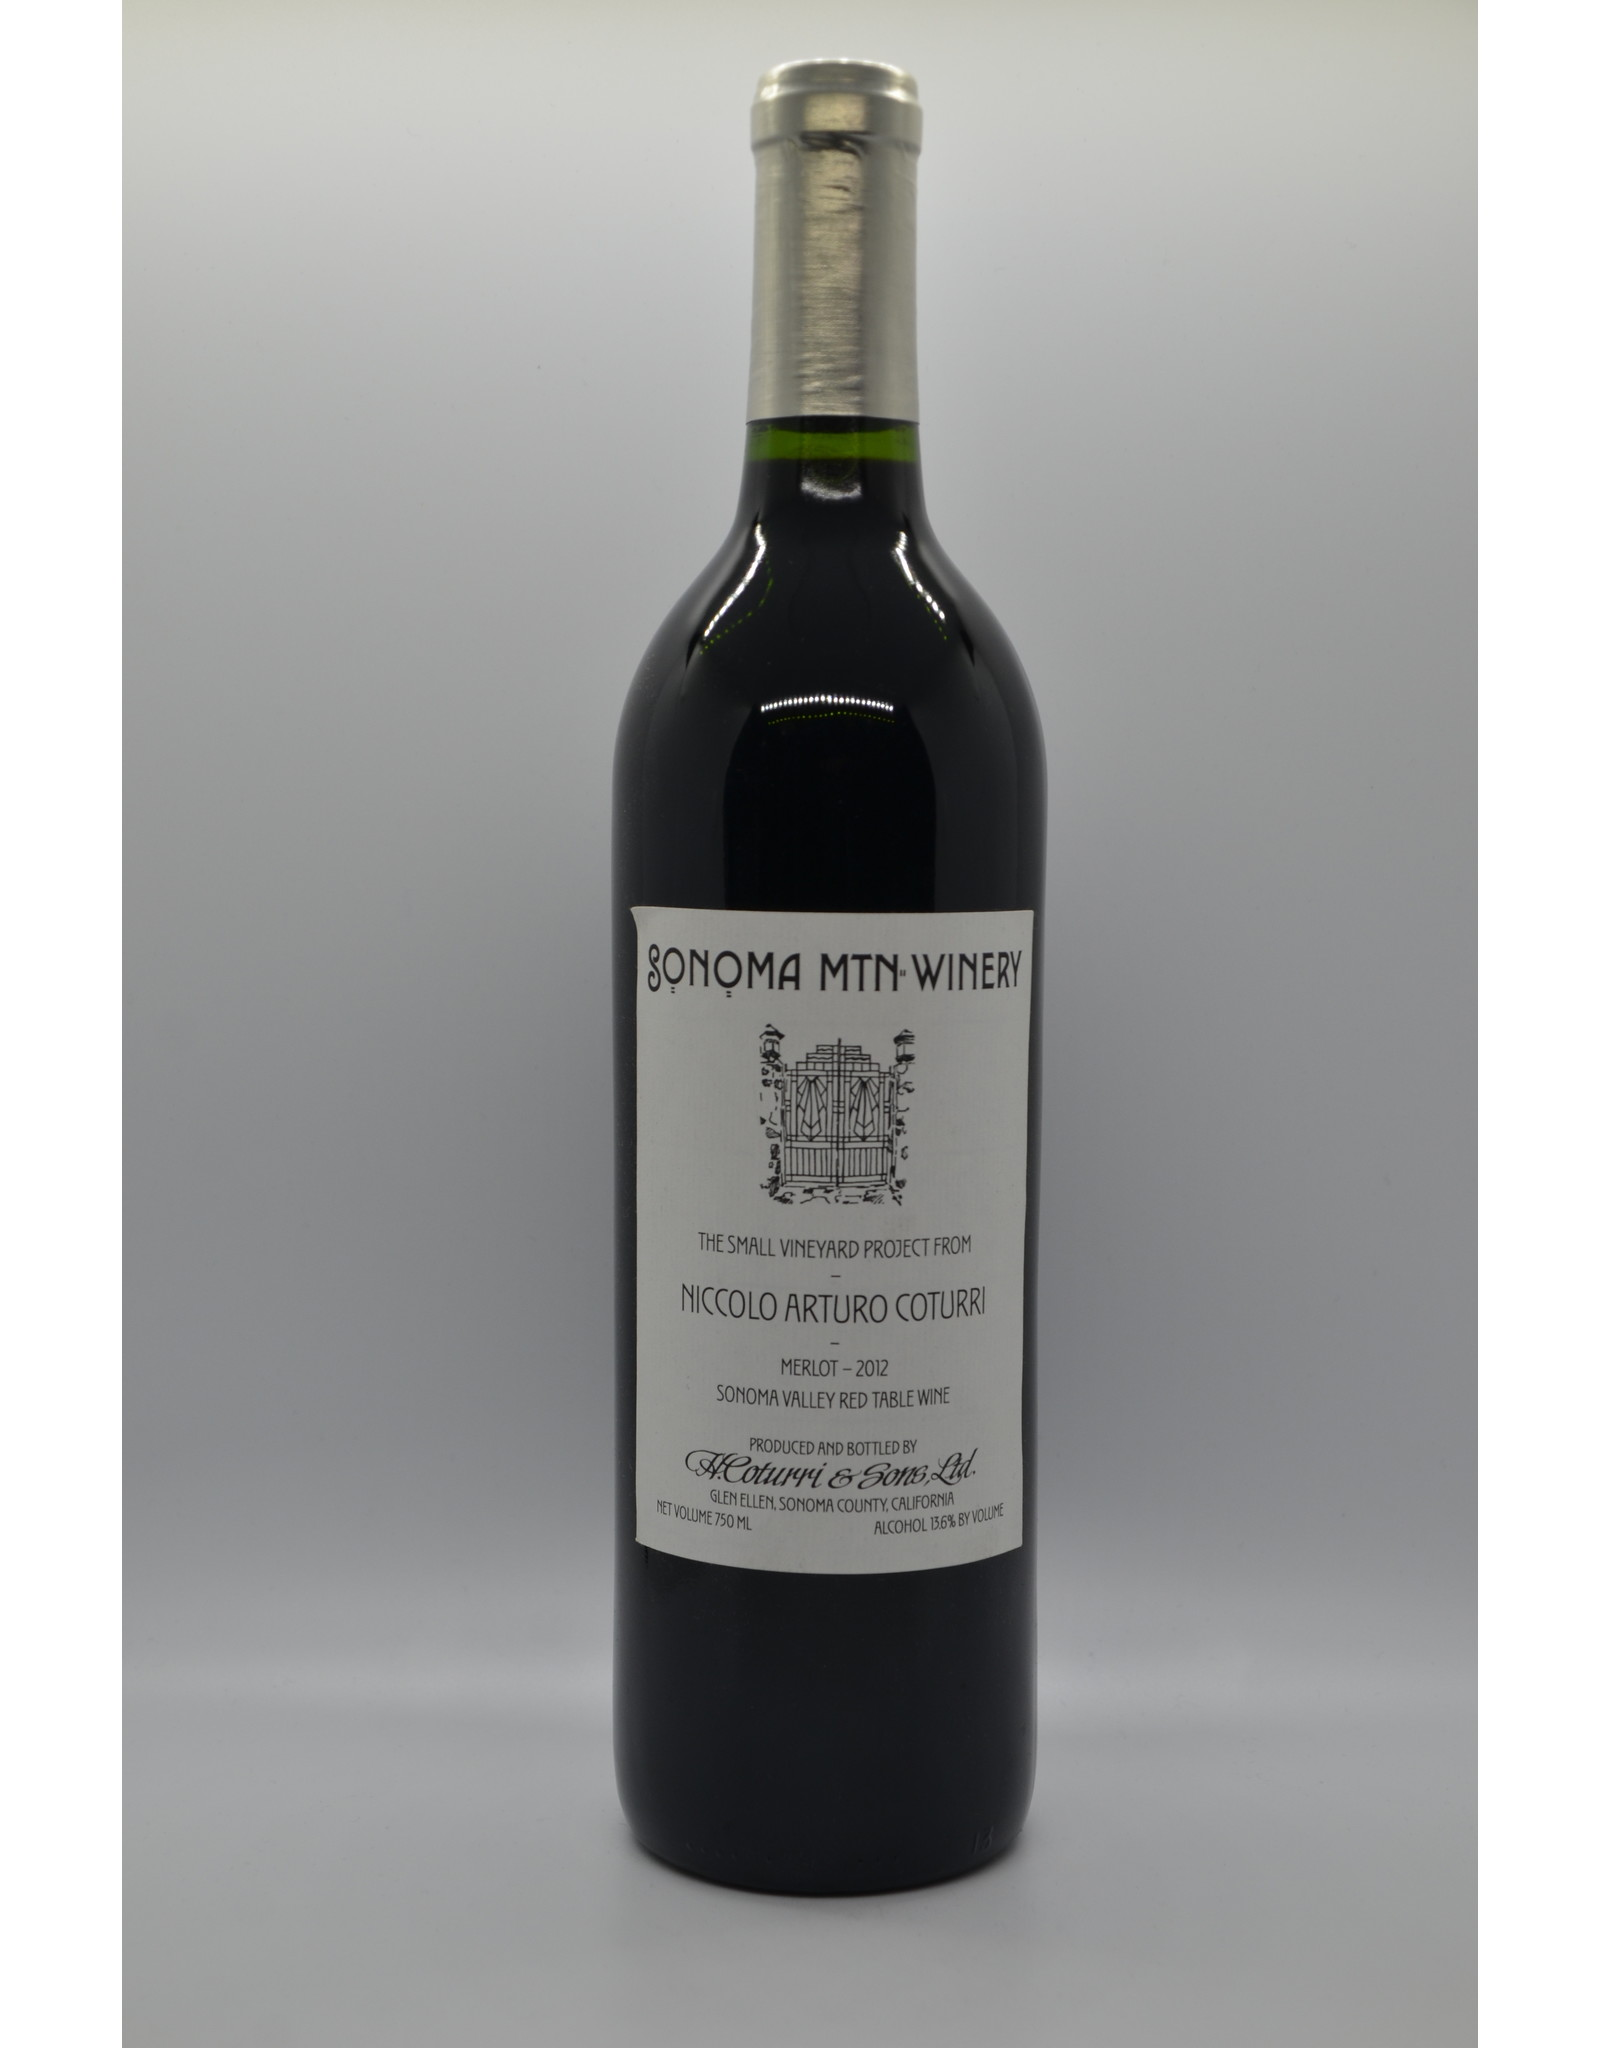 USA Sonoma Mtn Winery Merlot